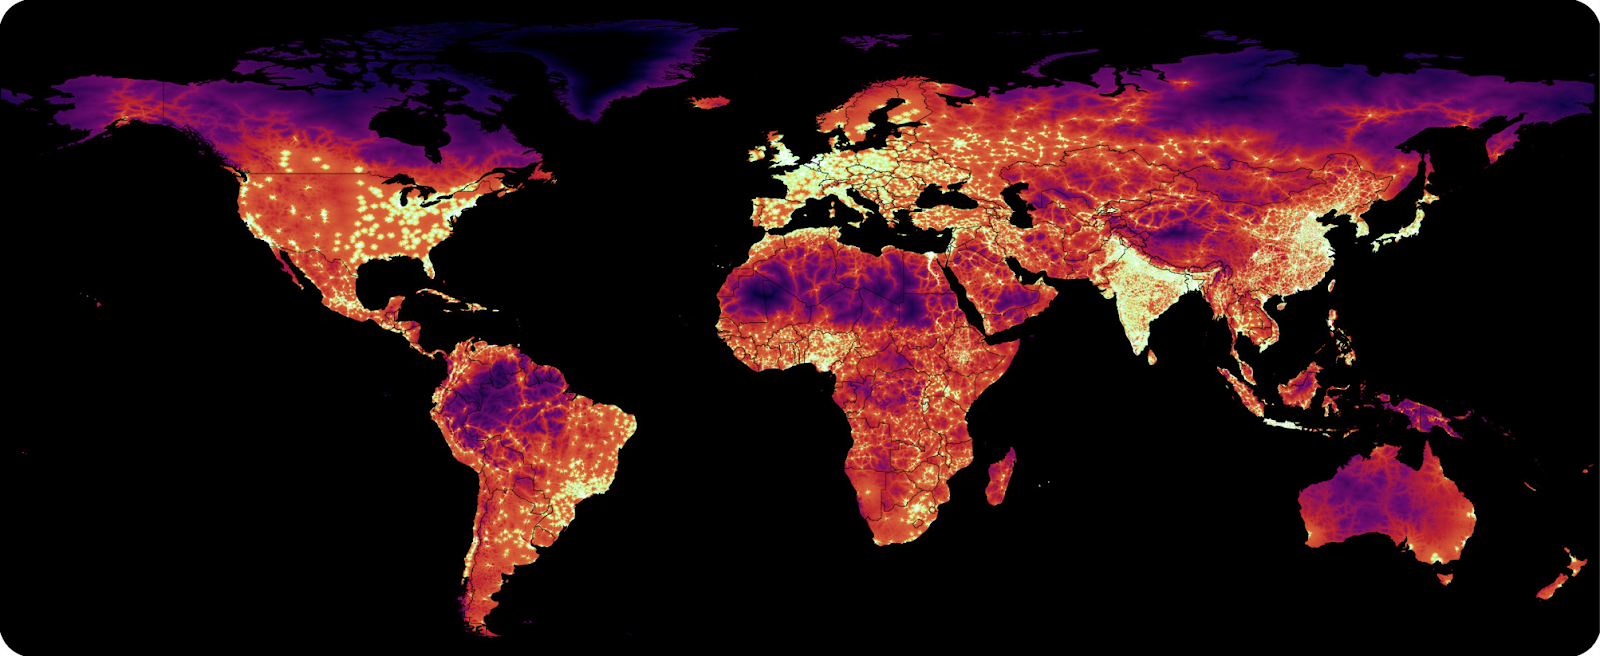 malaria-atlas-isochrone-map-design